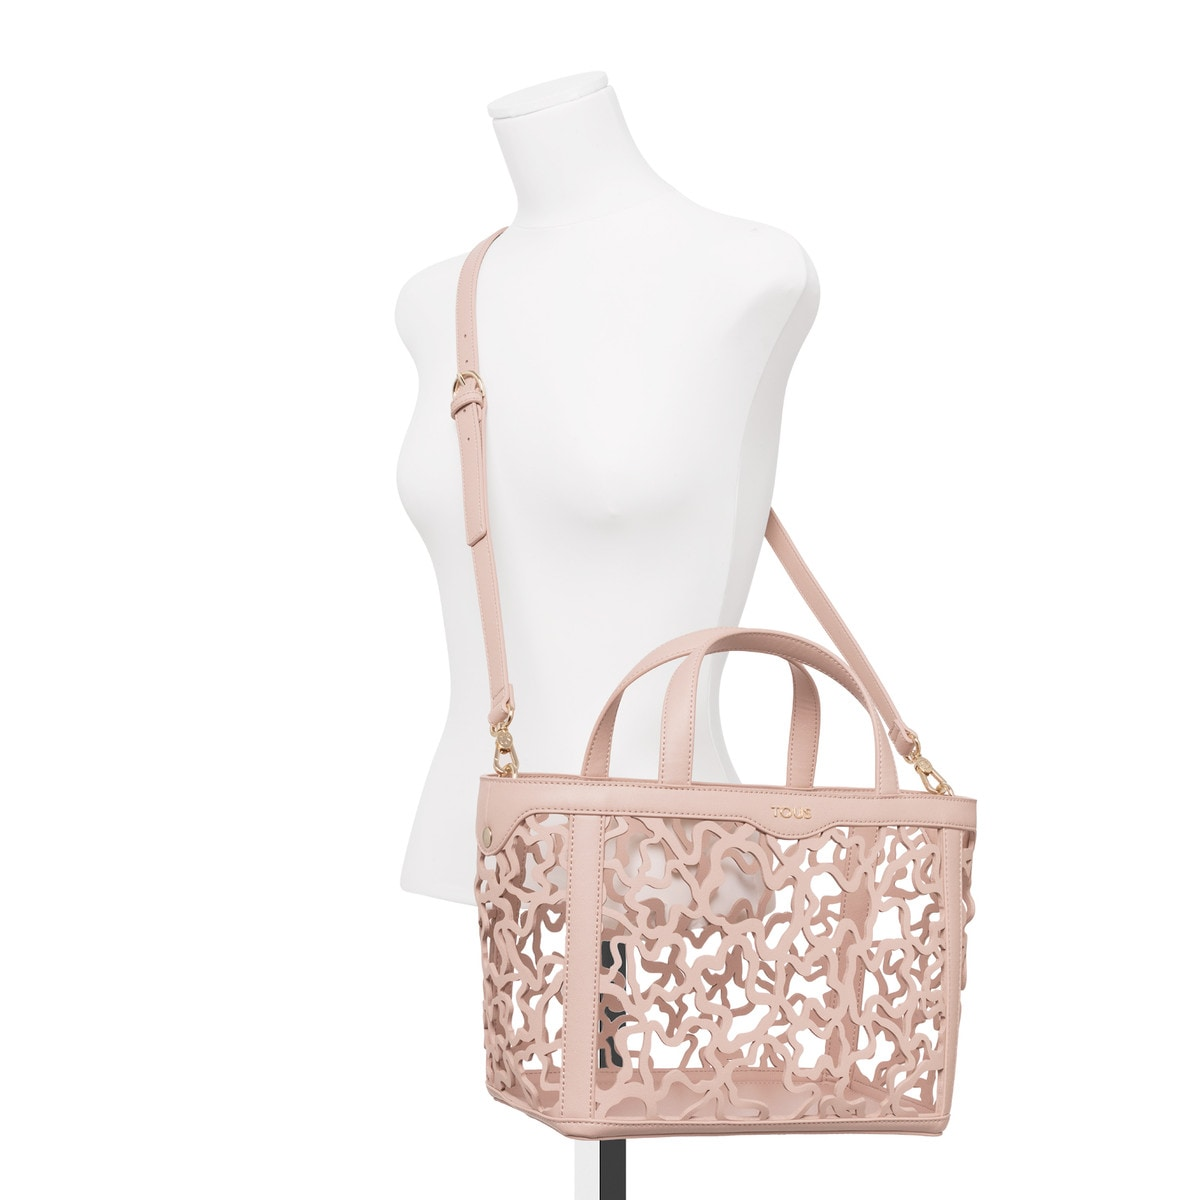 Small pink Kaos Shock Tote bag